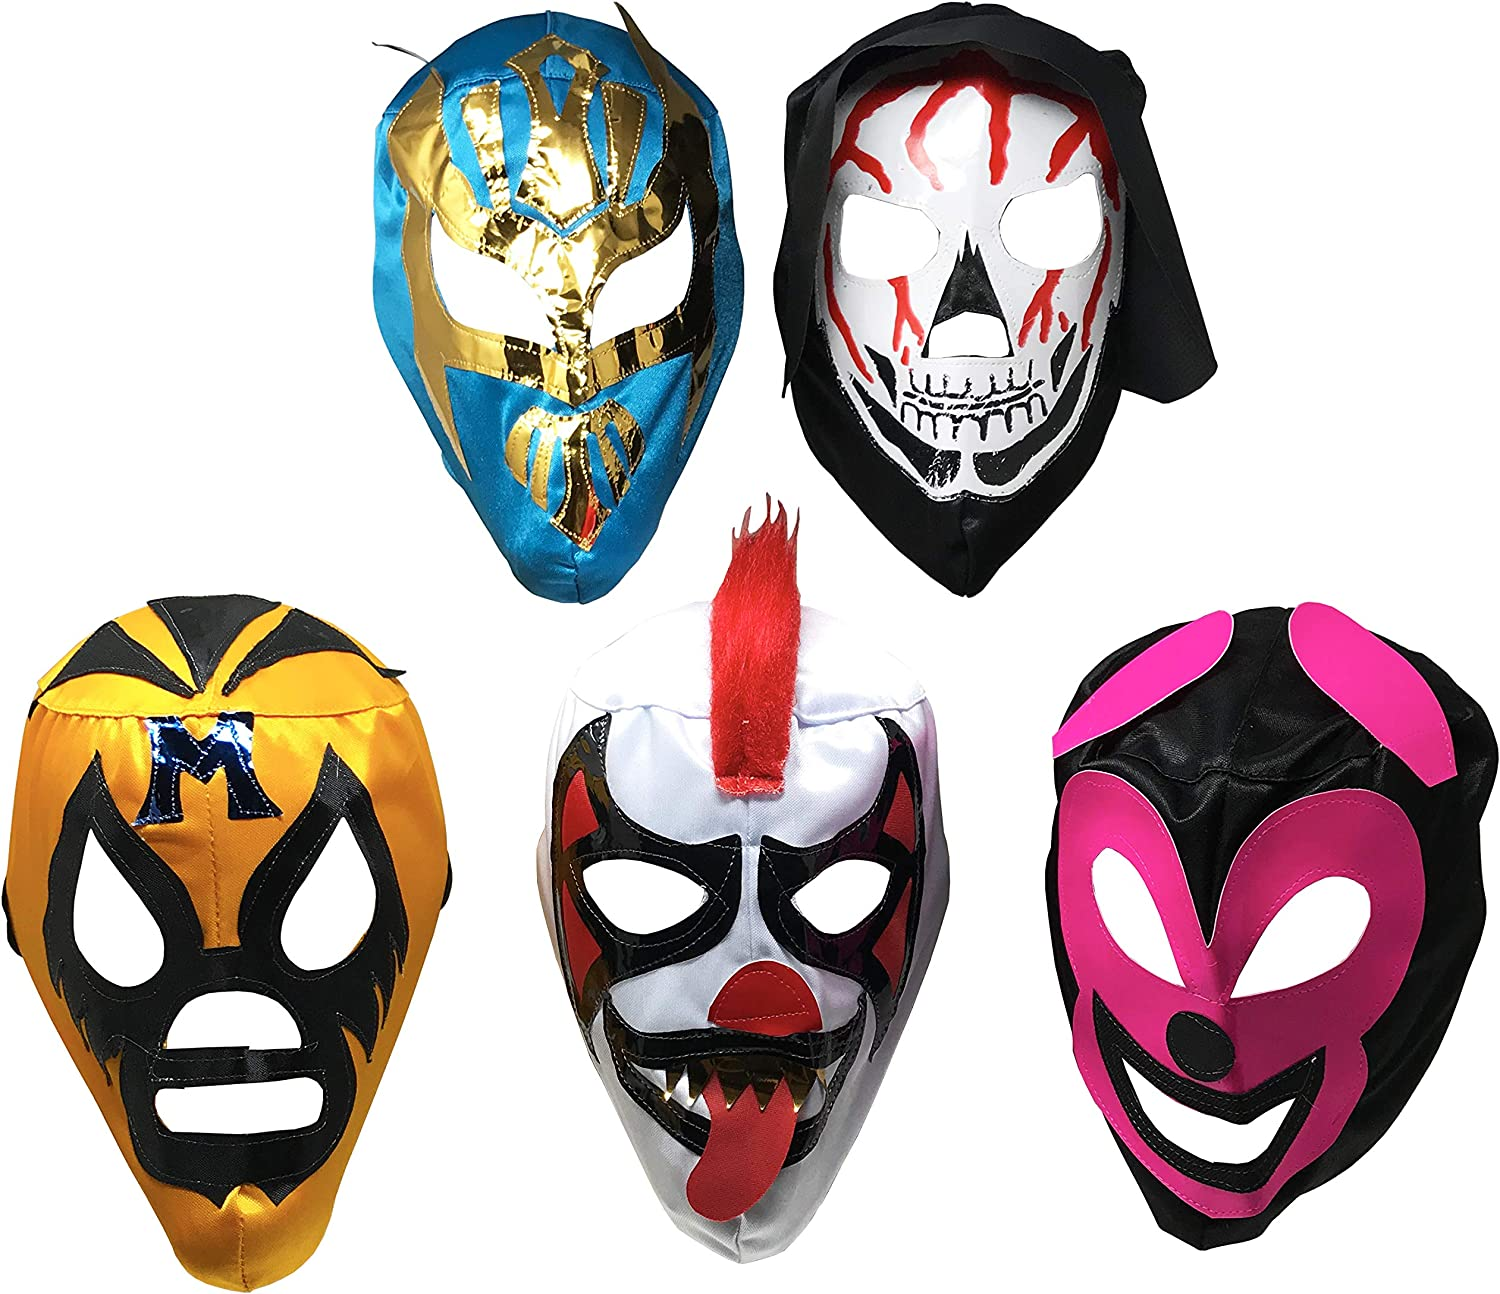 5PACK Máscaras de Luchador   Assorted Mexican Wrestling Masks   Excellent Costume for Mexican Fiesta   Adult Size Lucha Libre Mask   Traditional Luchador Mask